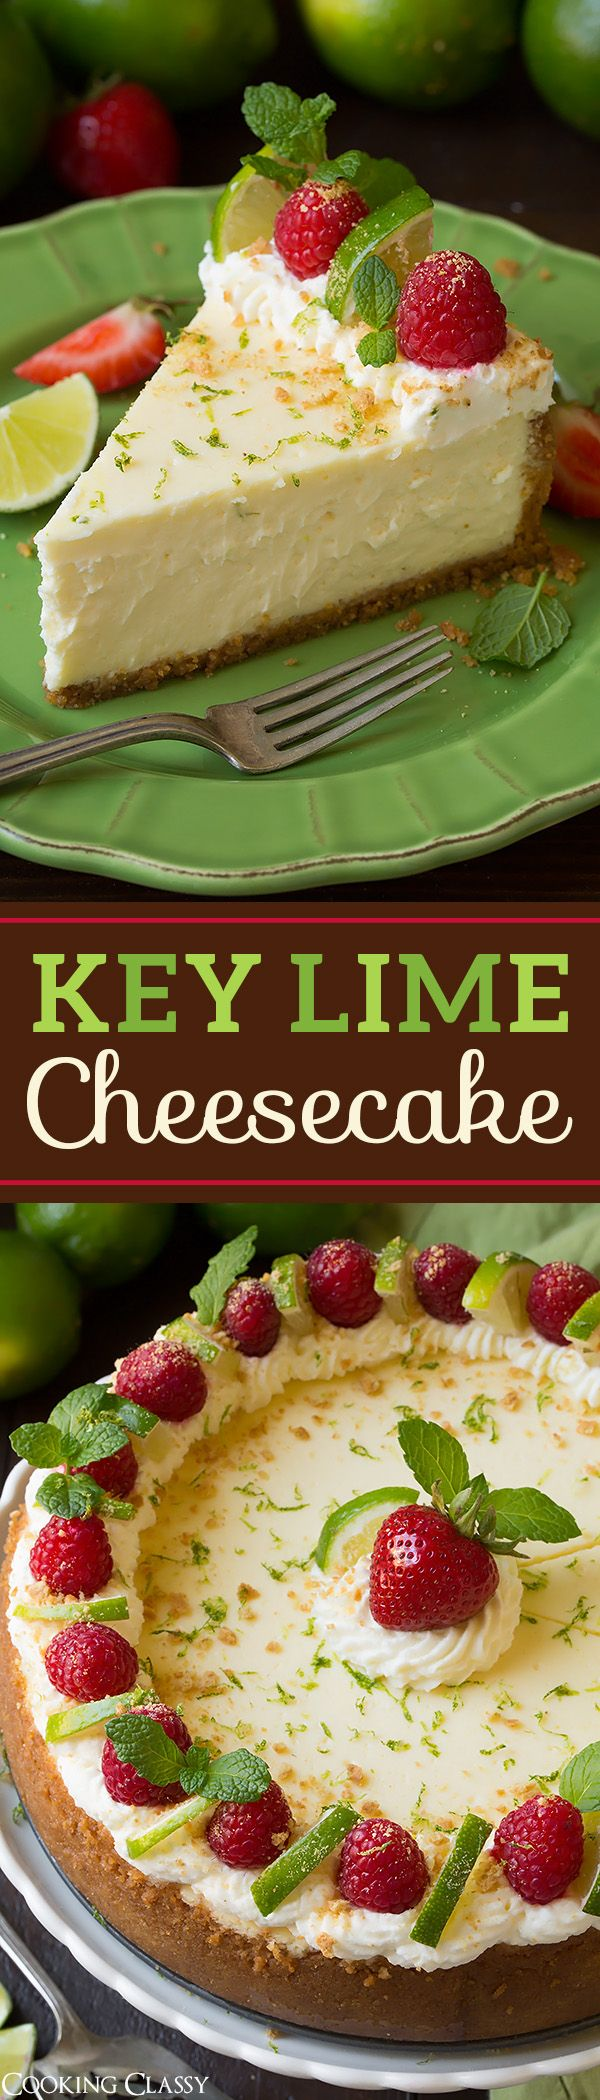 Key Lime Cheesecake - the perfect summer cheesecake! This is TO DIE FOR!!